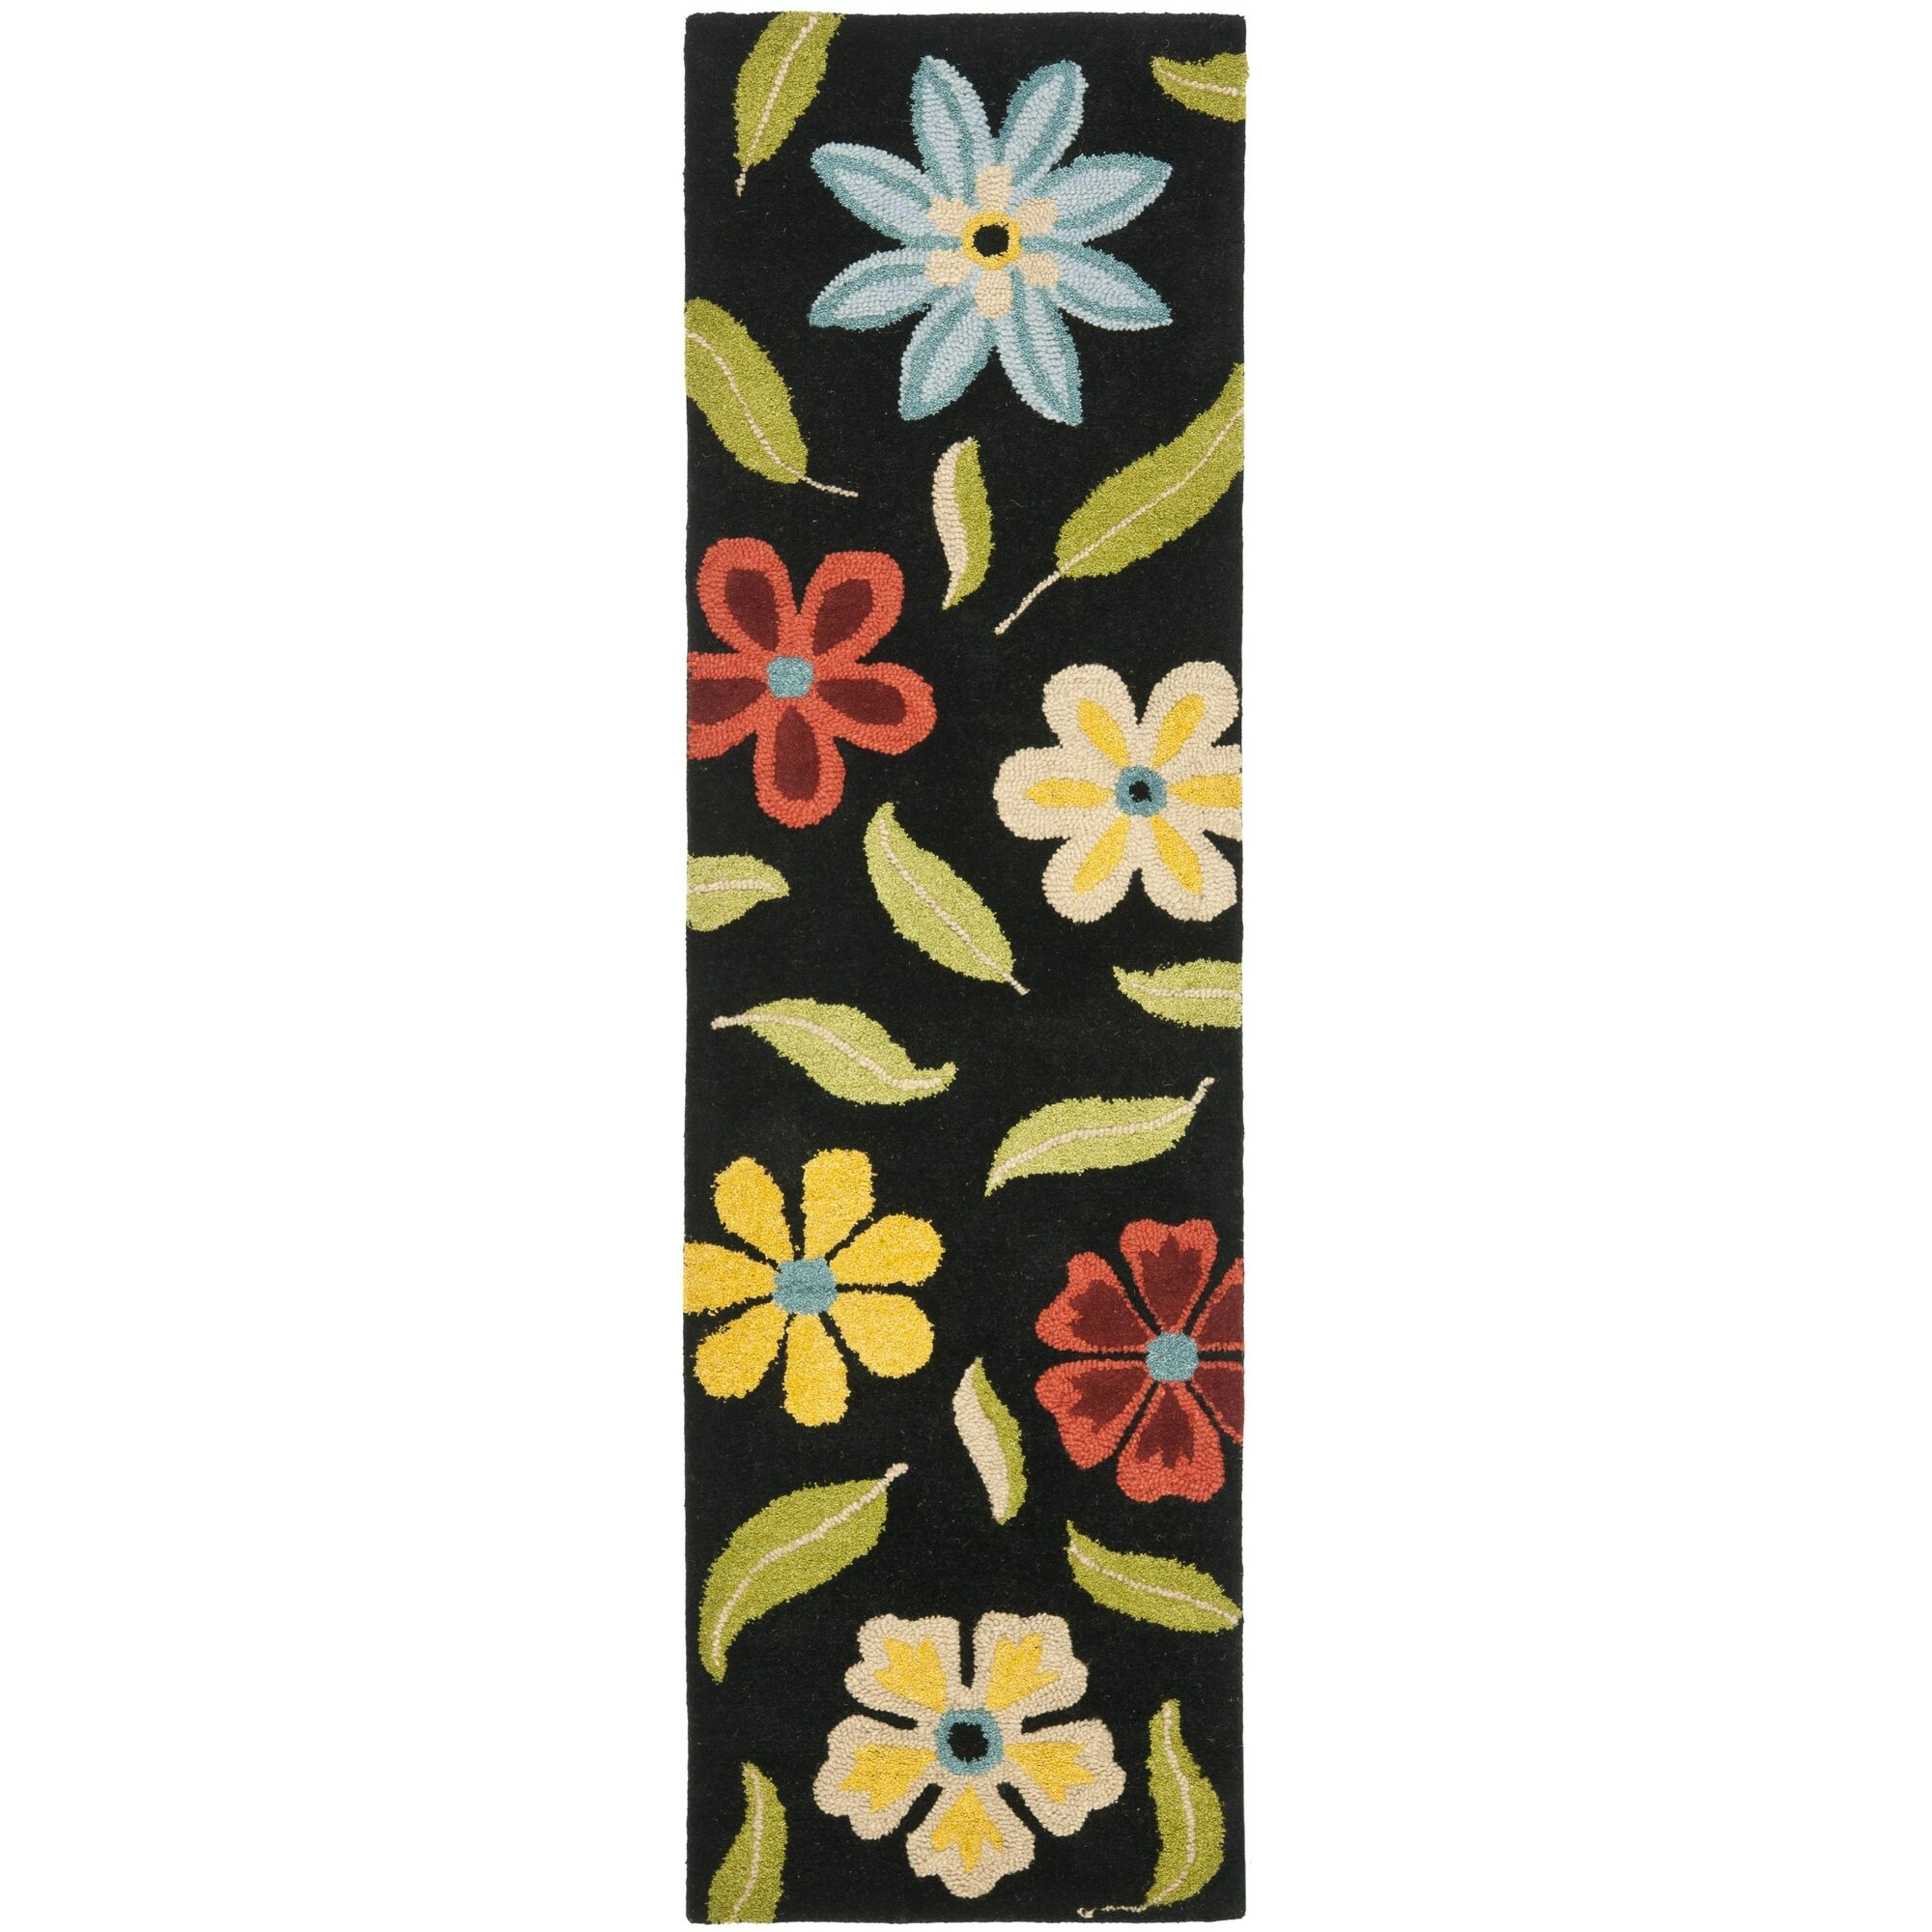 Ross Black Floral Area Rug Rug Size: Runner 2'6